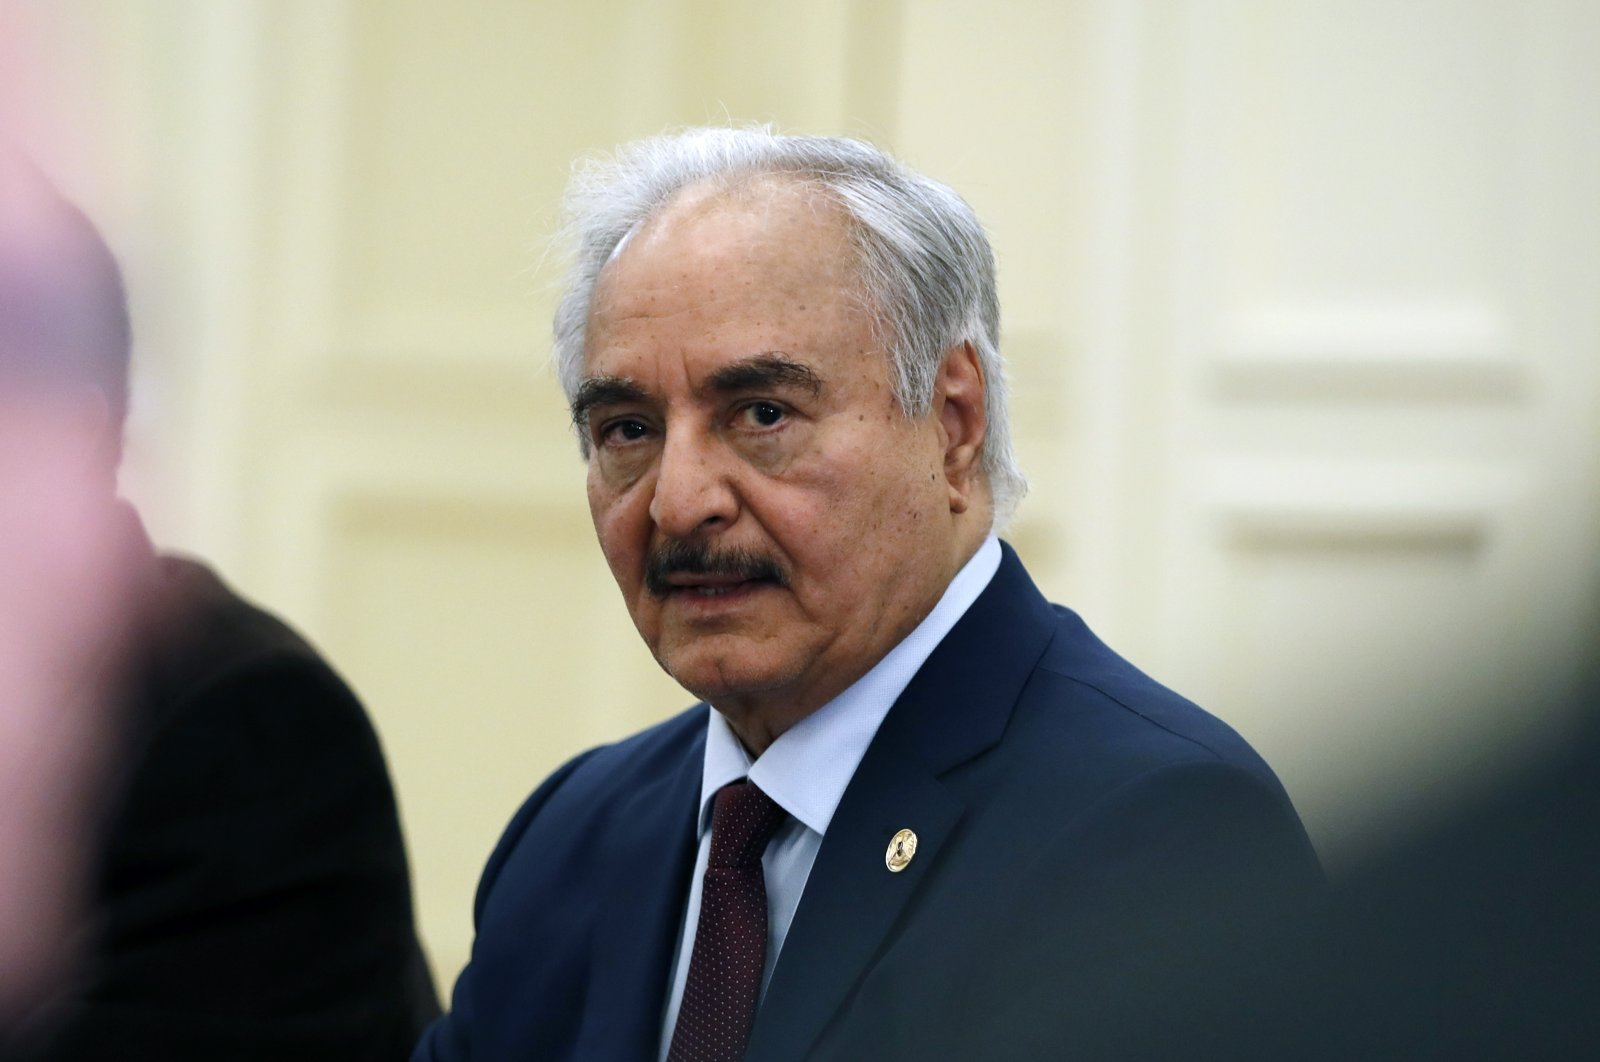 Libyan Gen. Khalifa Haftar joins a meeting with the Greek Foreign Minister Nikos Dendias in Athens, Greece, Jan. 17, 2020. (AP File Photo)